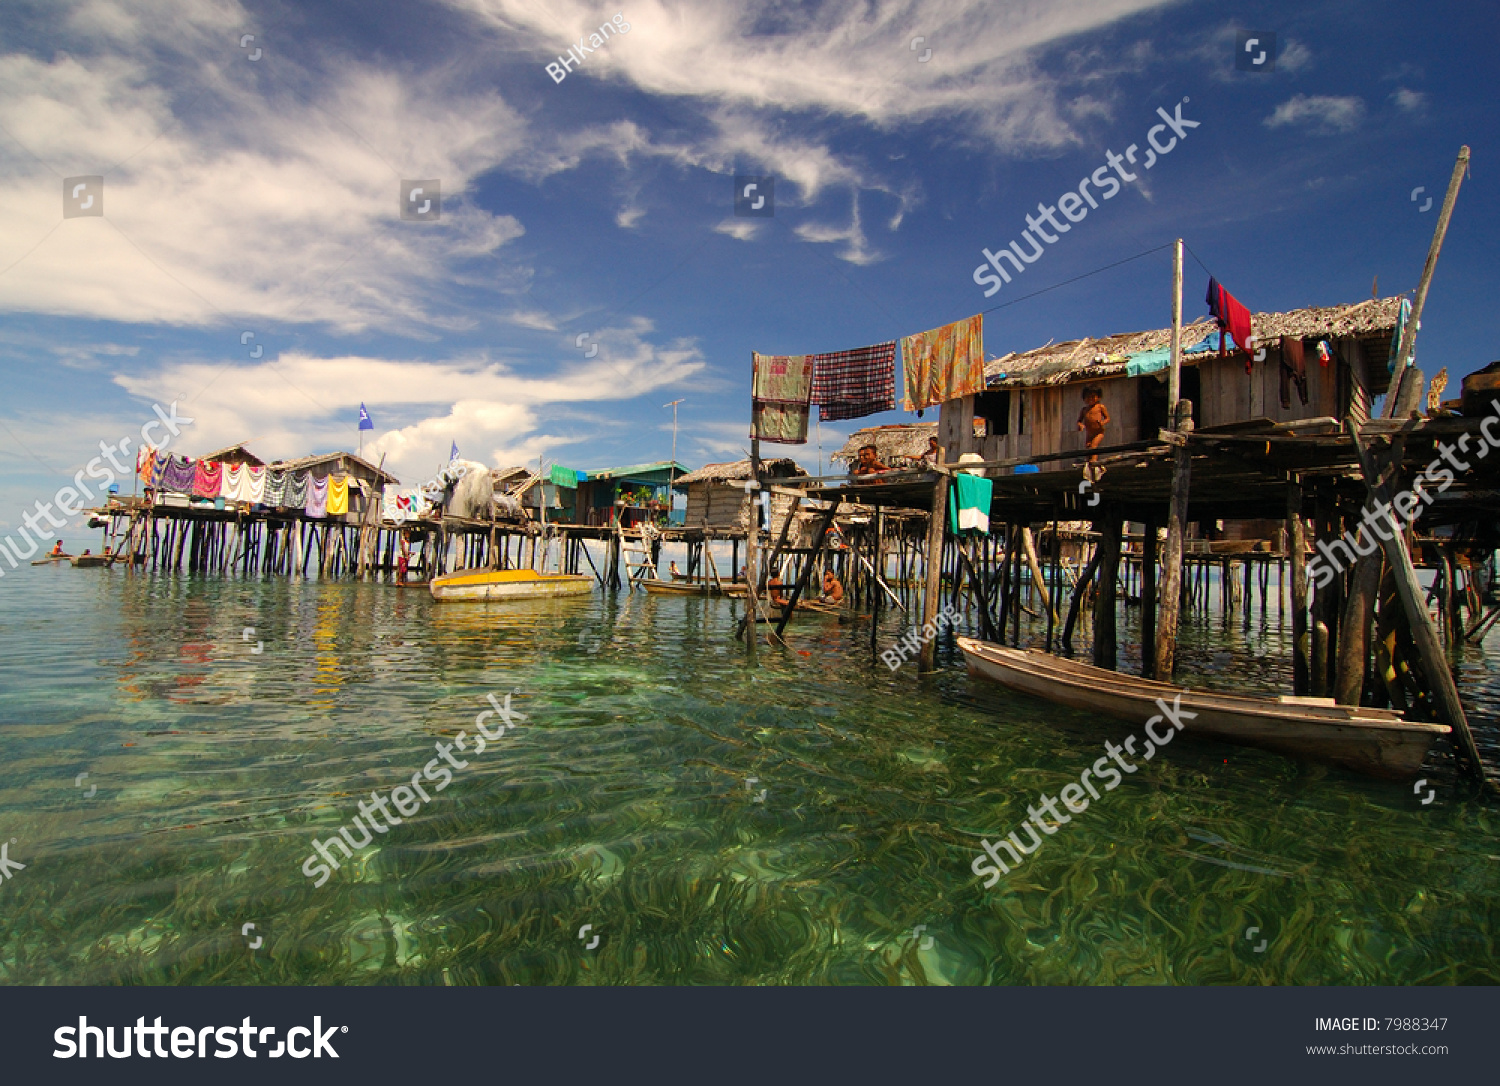 Wooden Houses Built On The Water Sabah Malaysia Stock